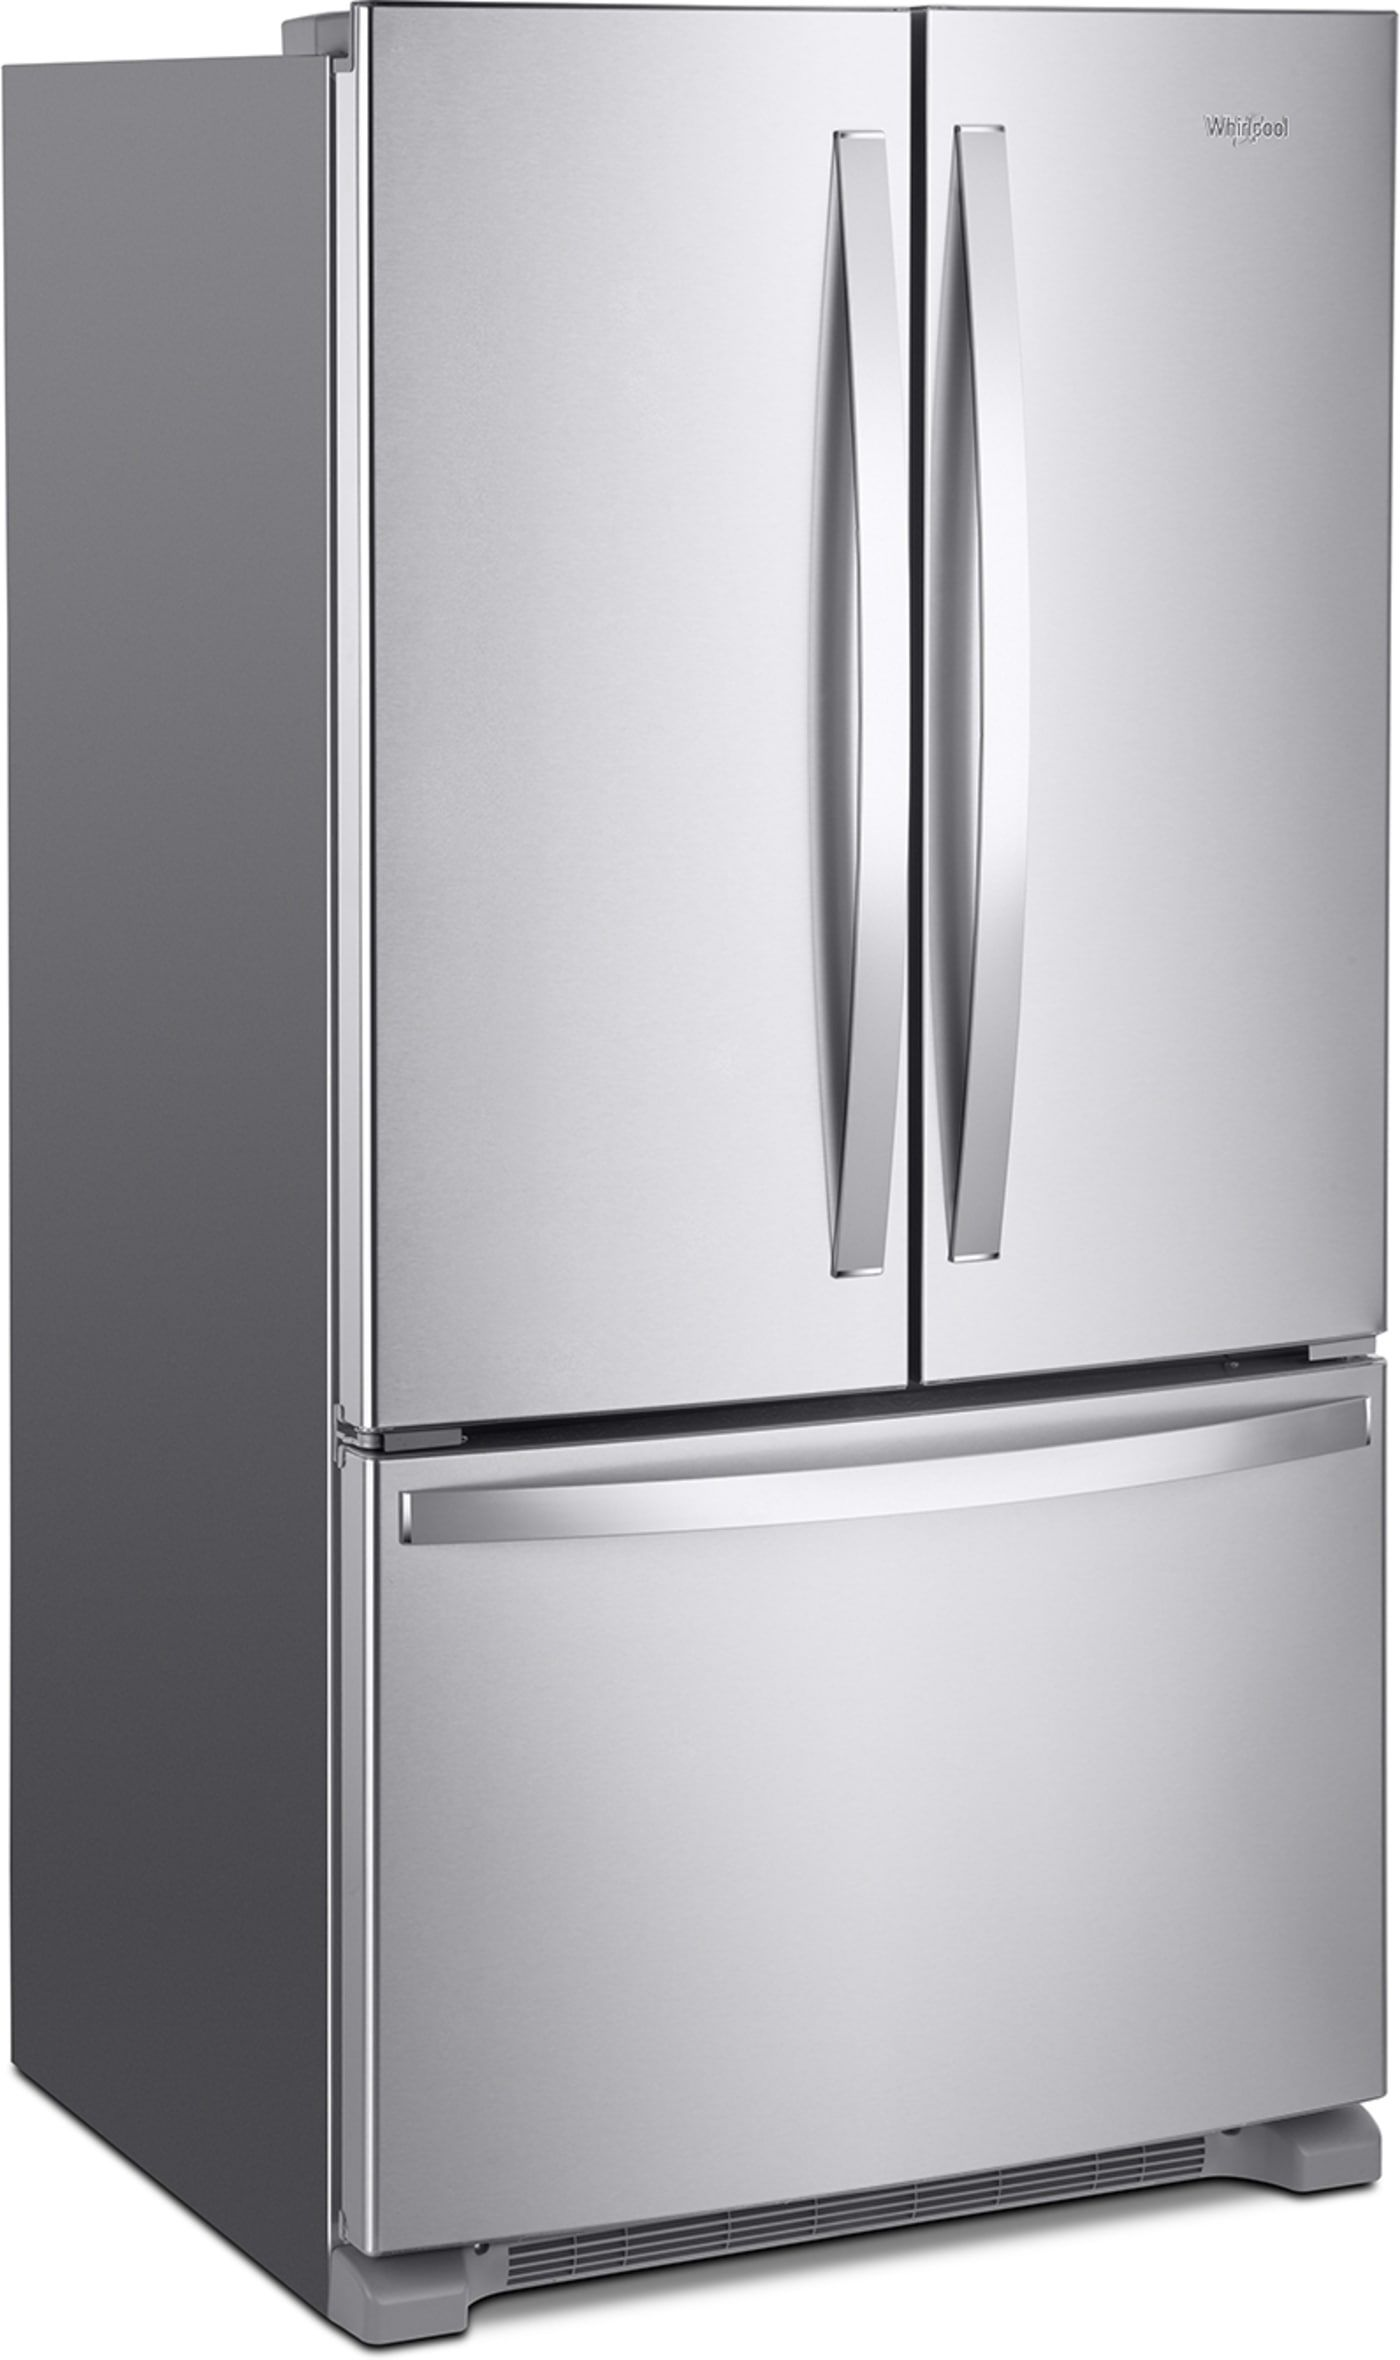 Wrf535swhz By Whirlpool French Door Refrigerators Goedekers Com French Door Refrigerator Glass Shelves Stainless Steel French Door Refrigerator